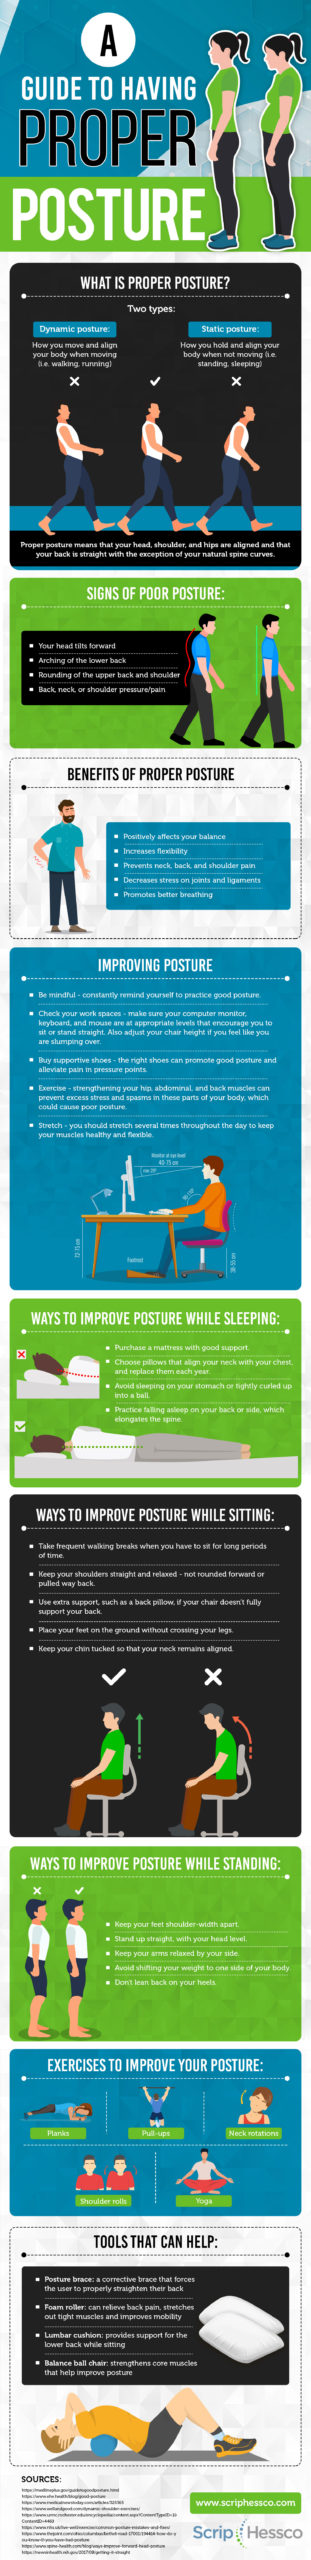 A Guide to Having Proper Posture Infographic.